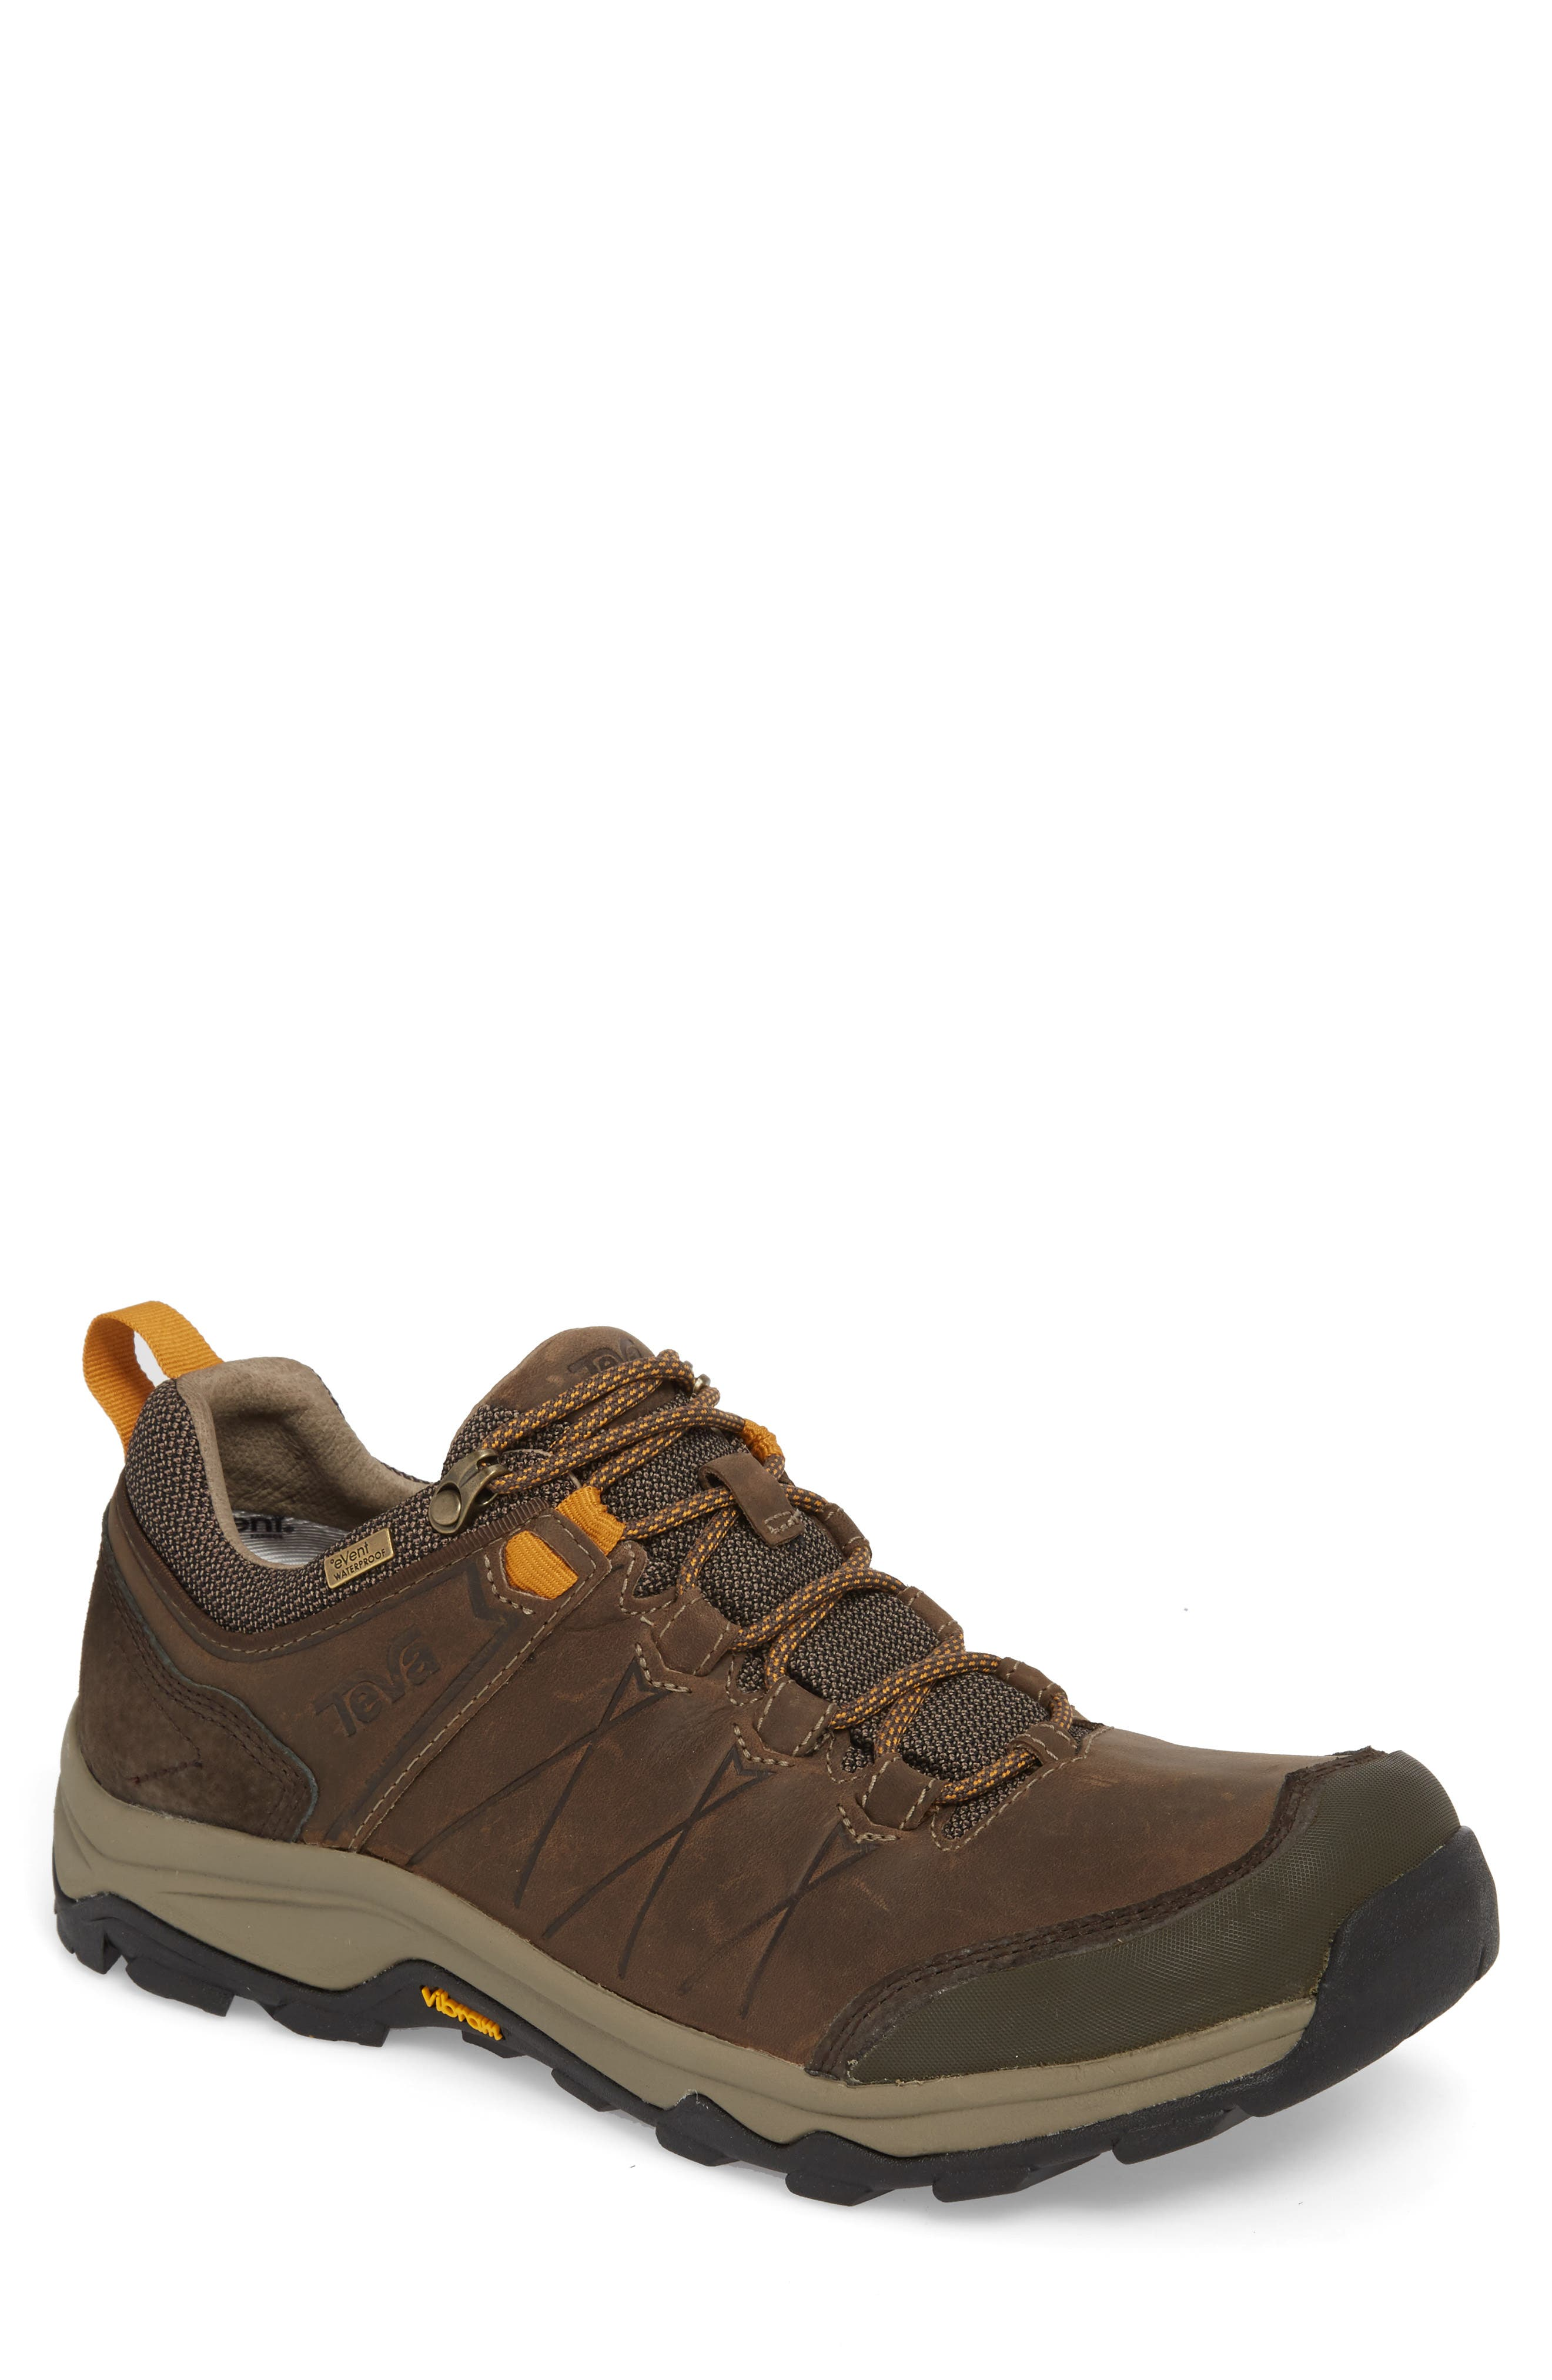 Main Image - Teva Arrowood Riva Waterproof Sneaker (Men)